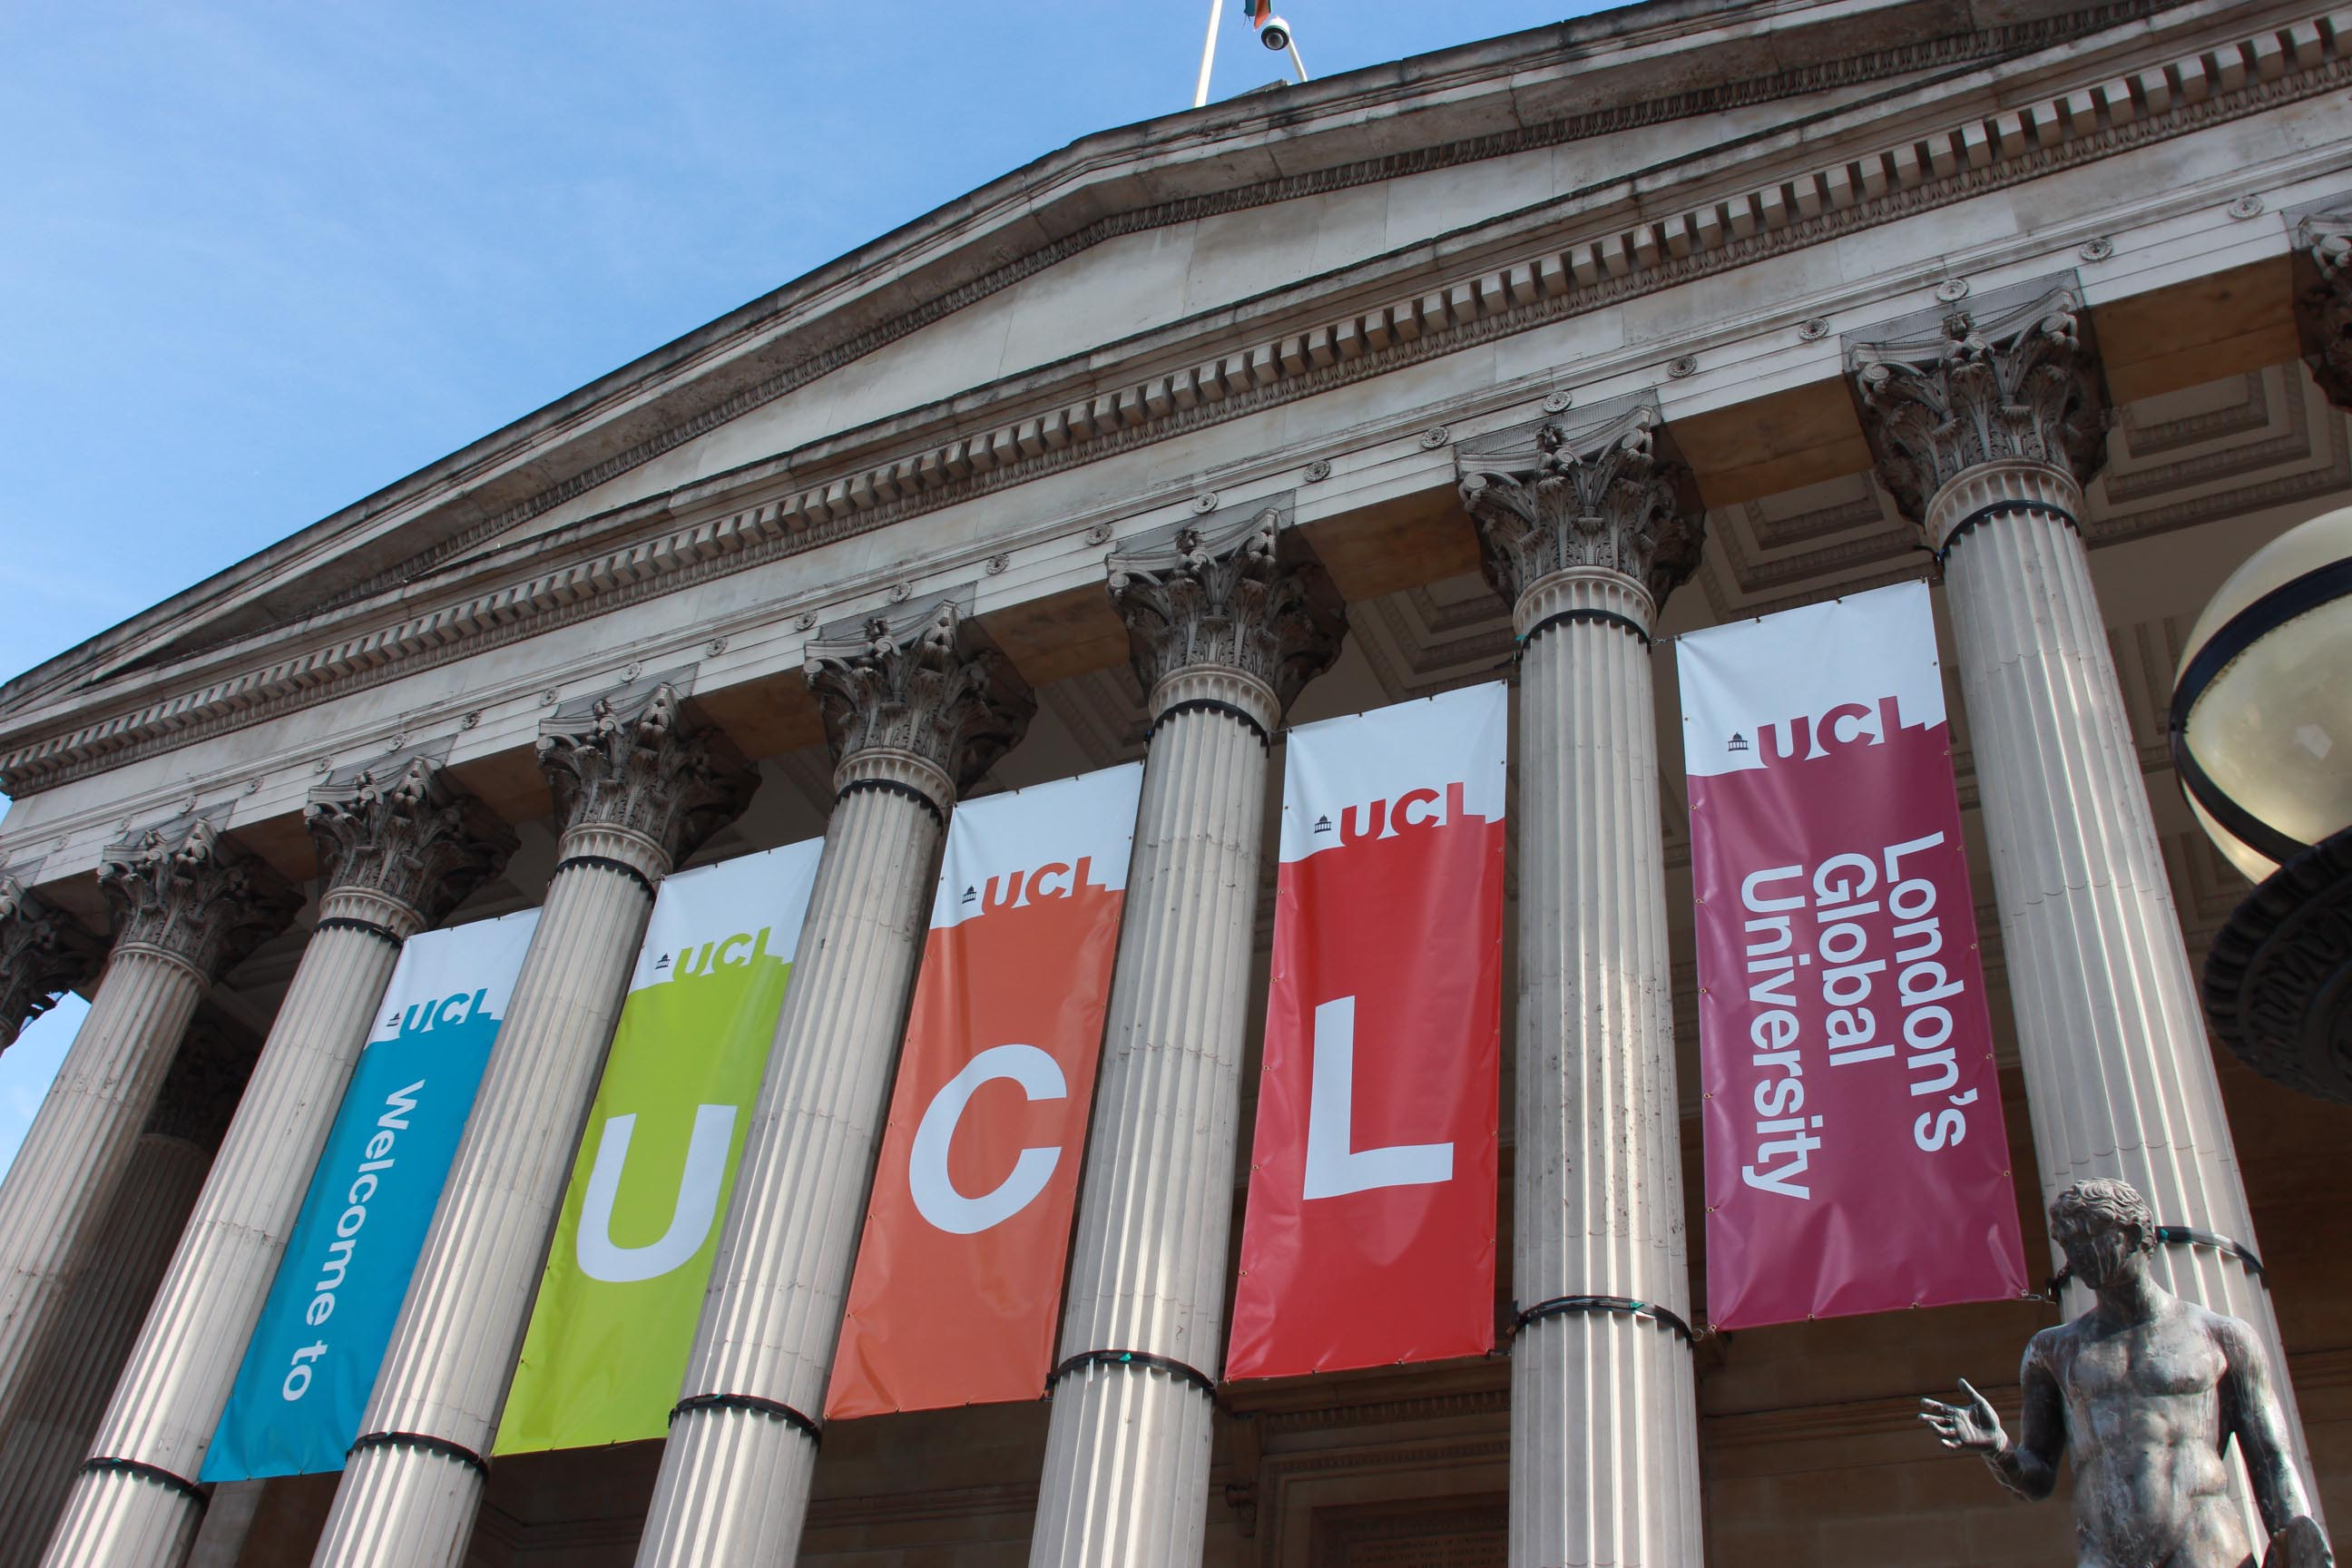 UCL Among World's Super-elite For Law, Education And